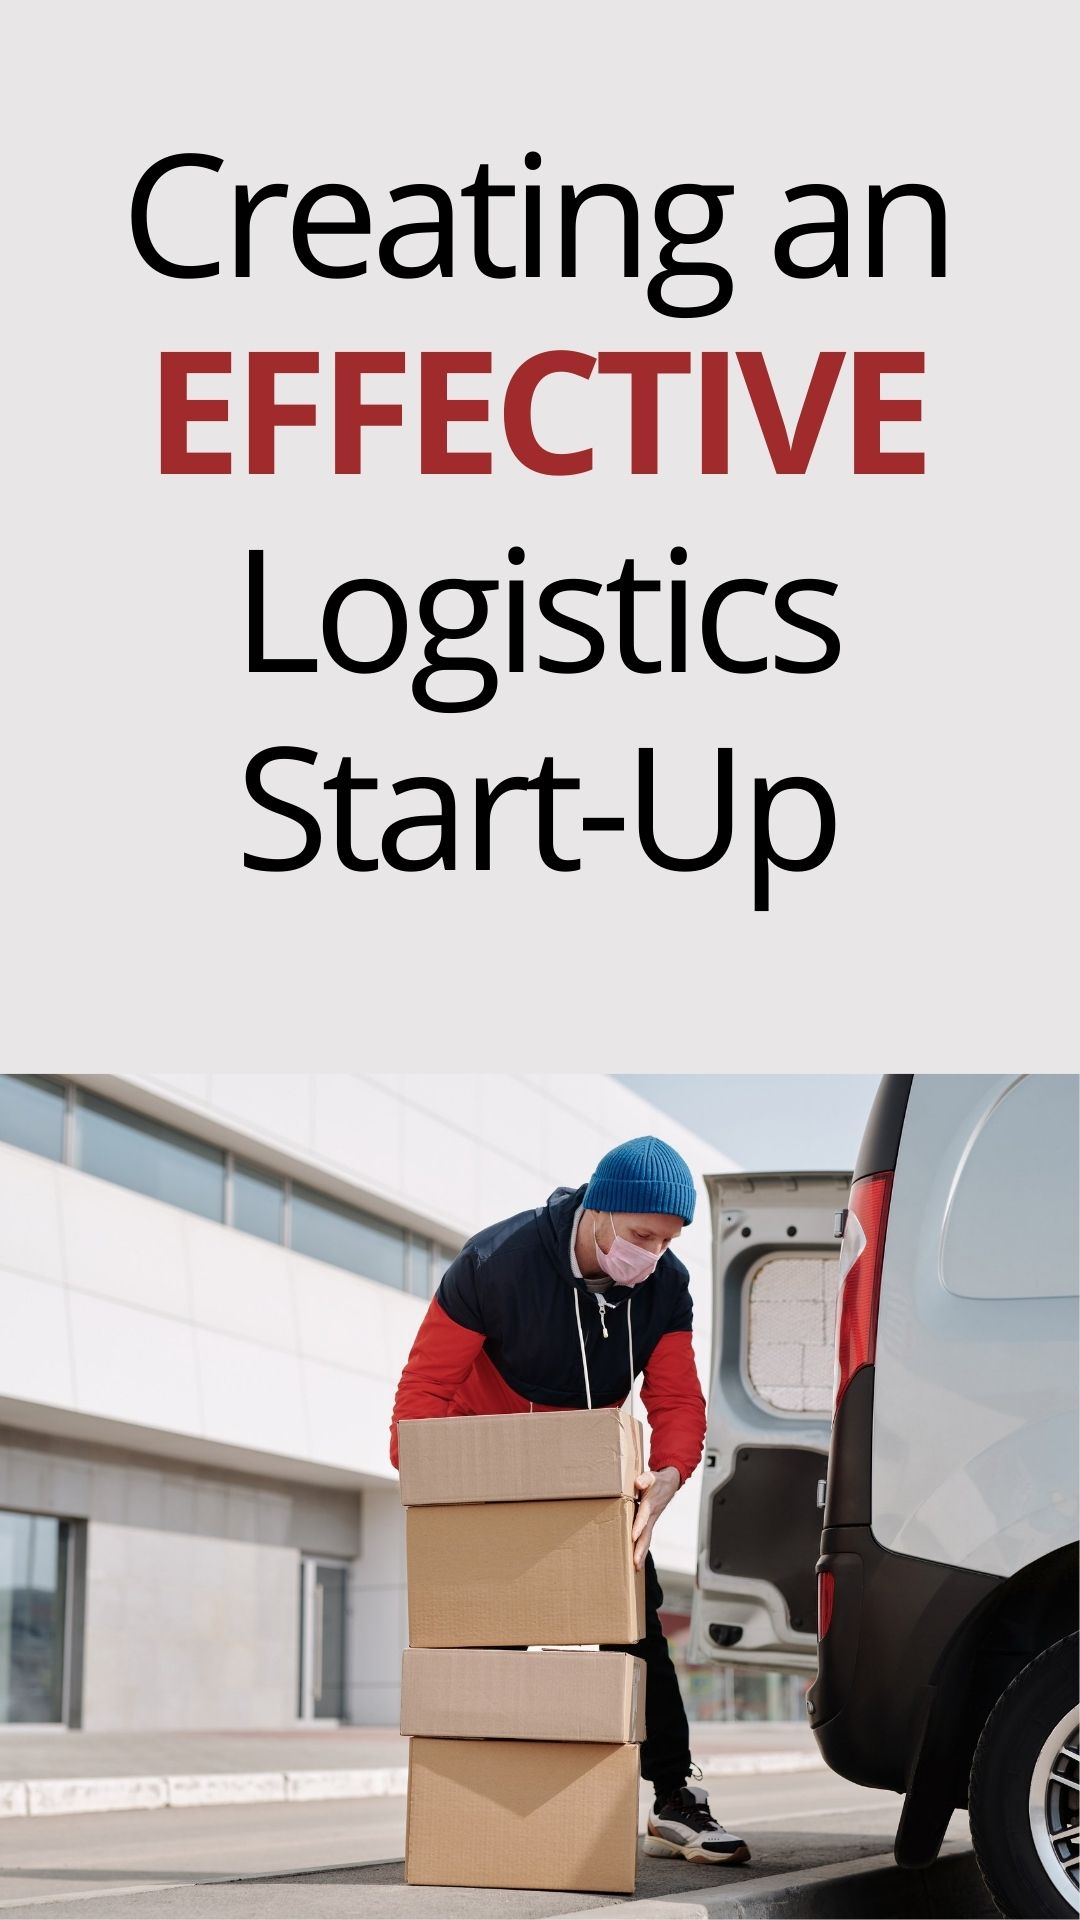 If you're thinking about starting a logistics company with minimal investment, then read on for some great tips!